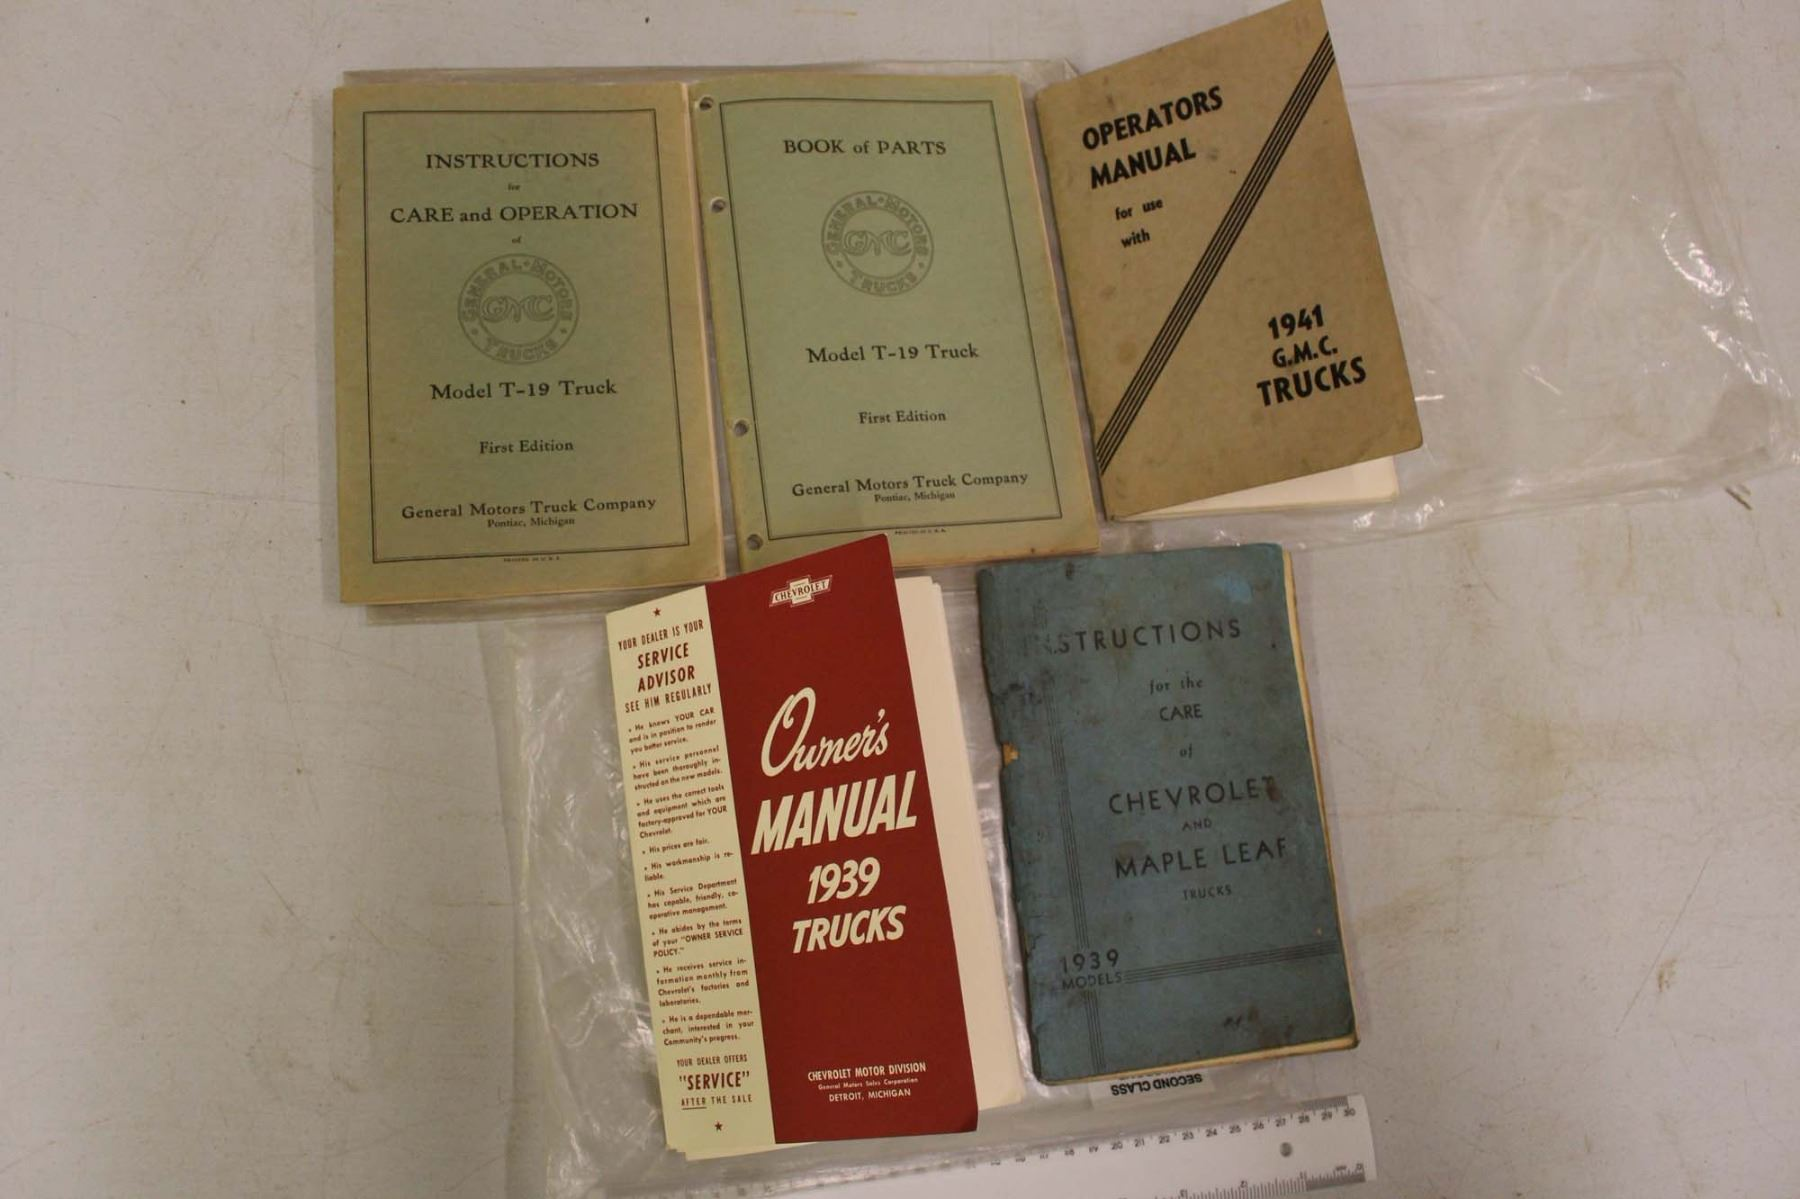 Image 1 : 1939&1941 Chevrolet Truck Owners Manuals& GMC Model T-19 Truck  Instruction Manual ...